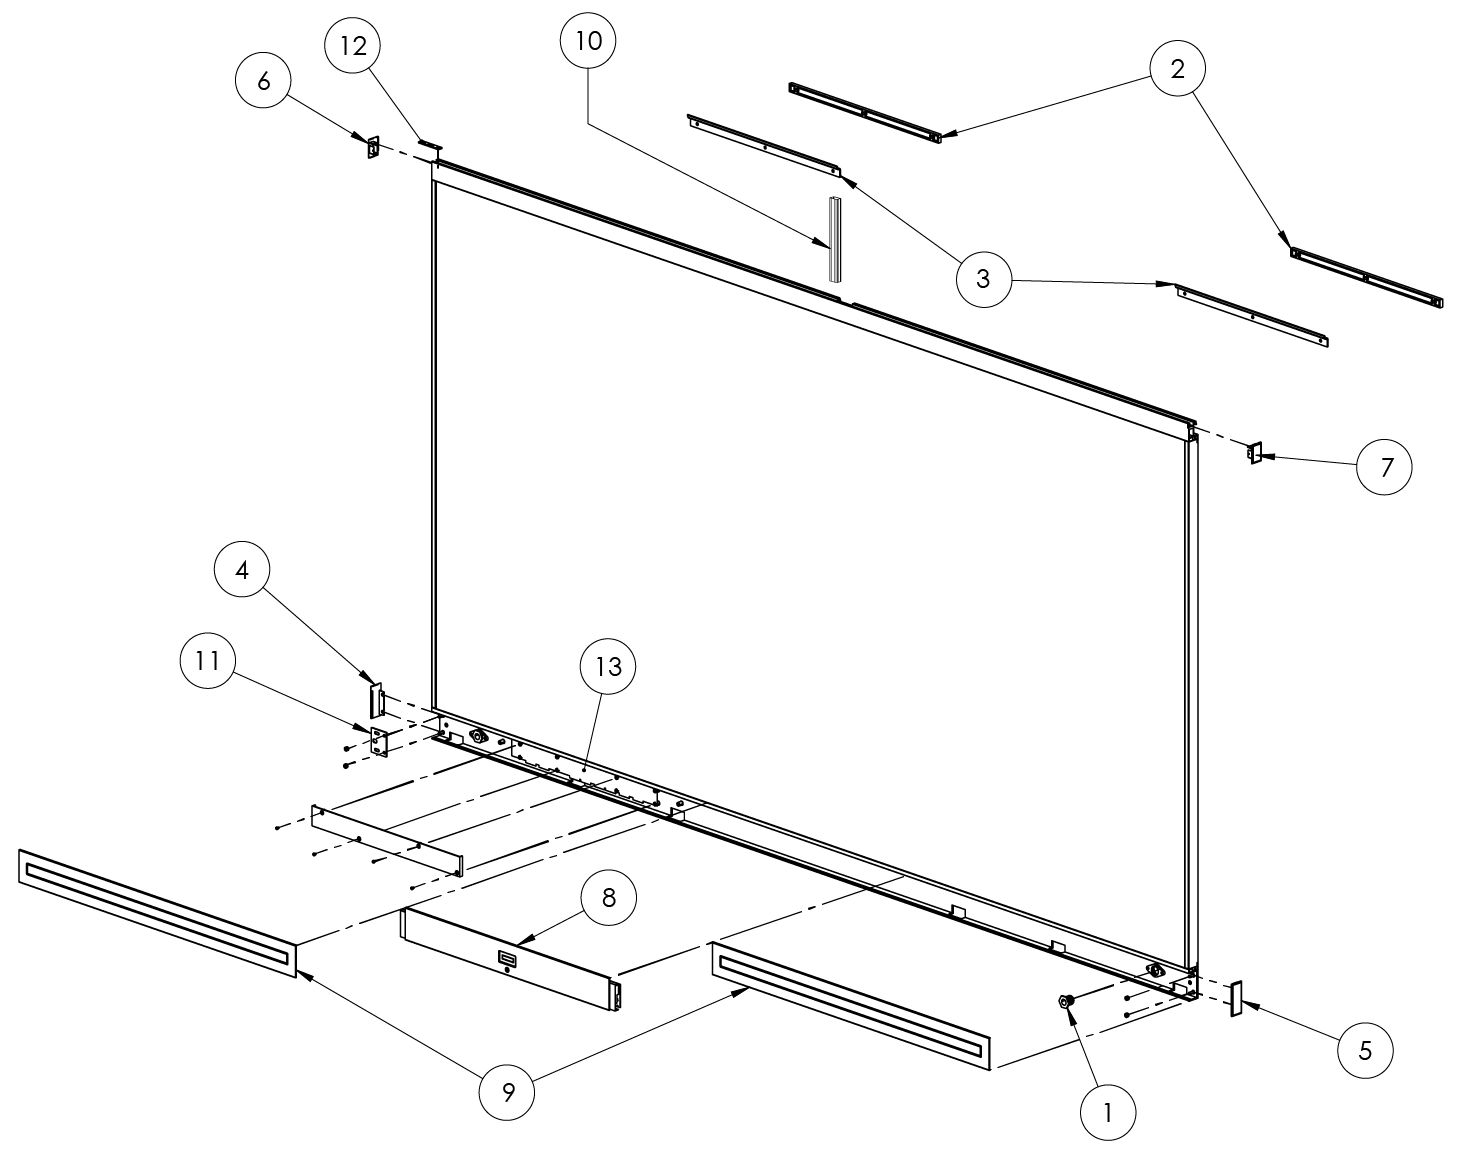 Wiring Schematic For Usb To Vga Adapter - Wiring Diagrams Schema